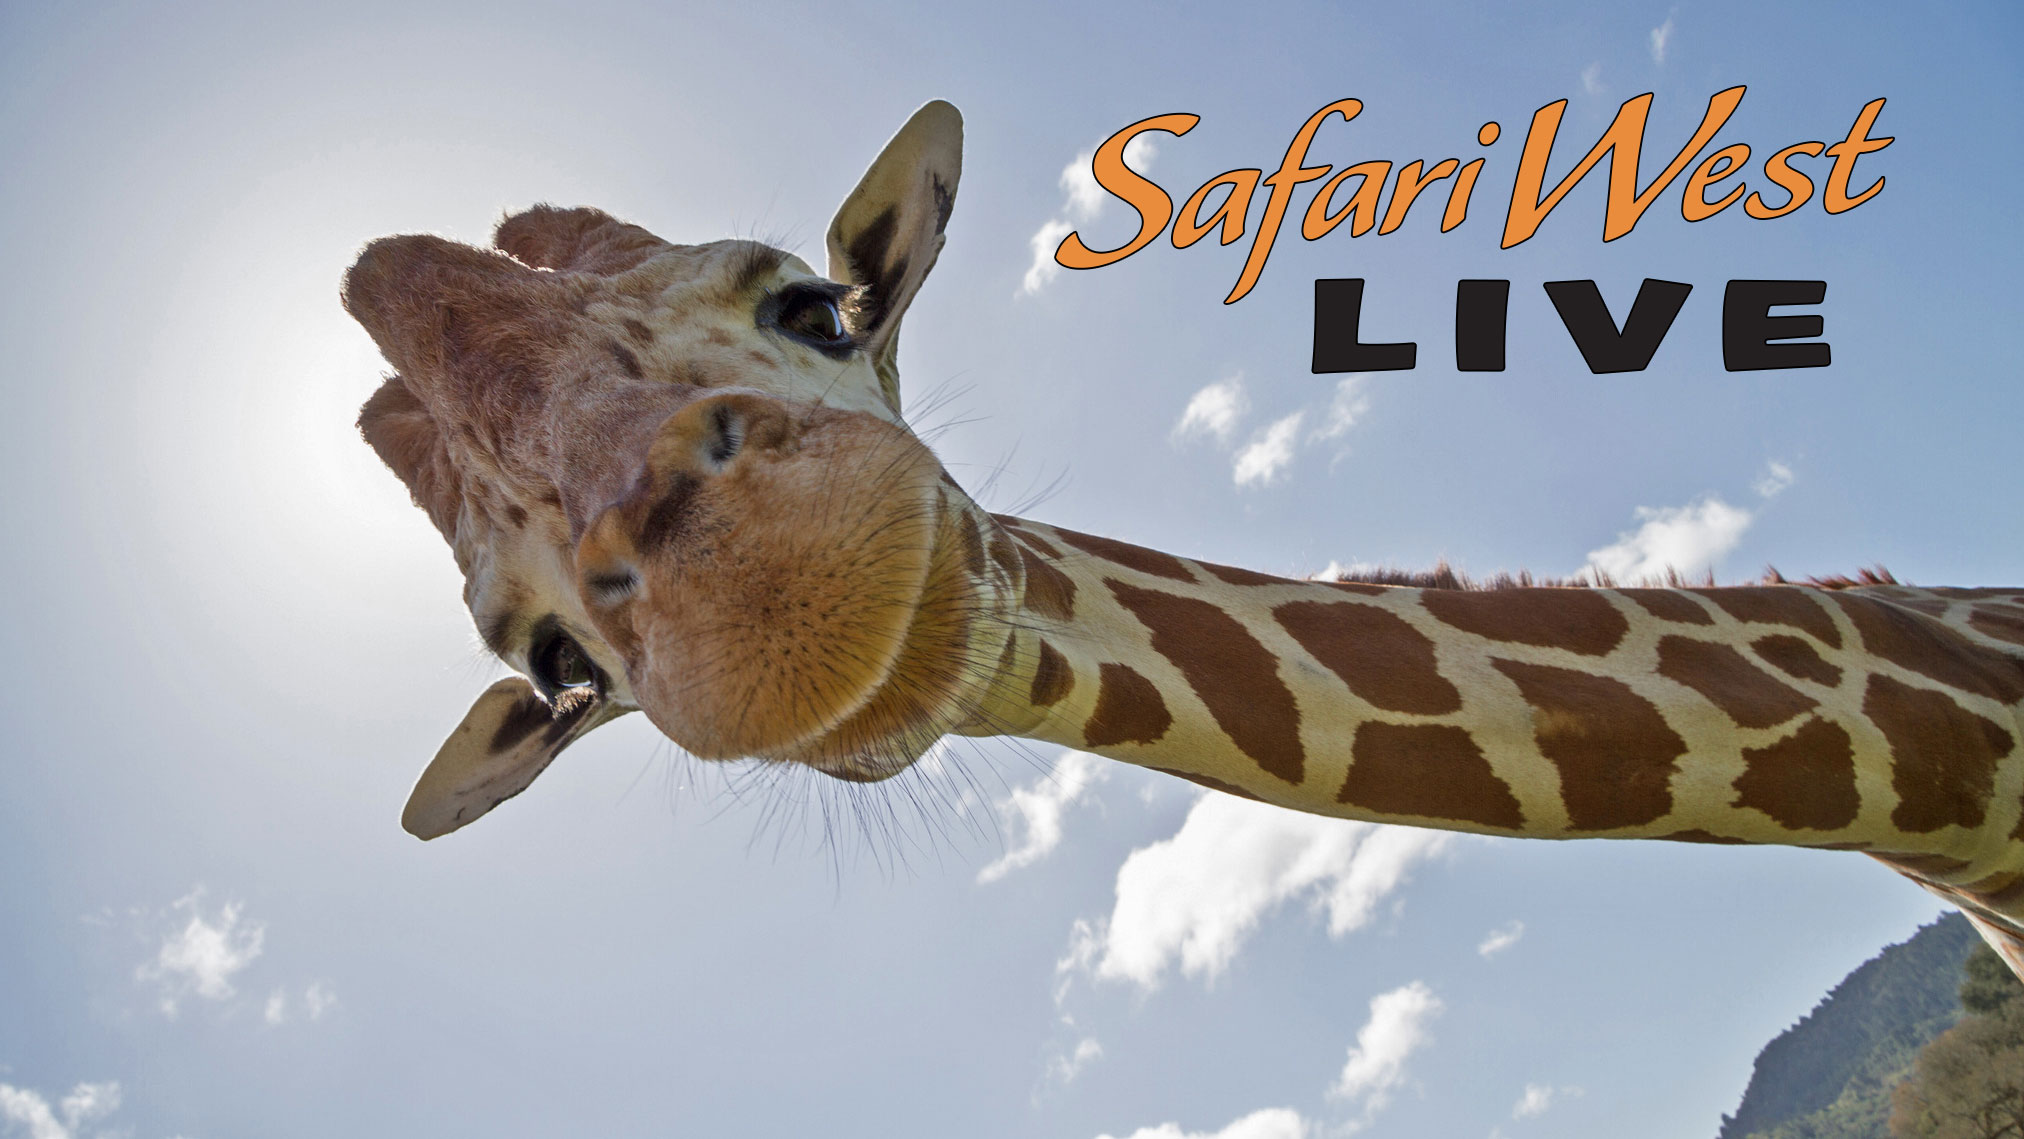 Safari West Live with Giraffe